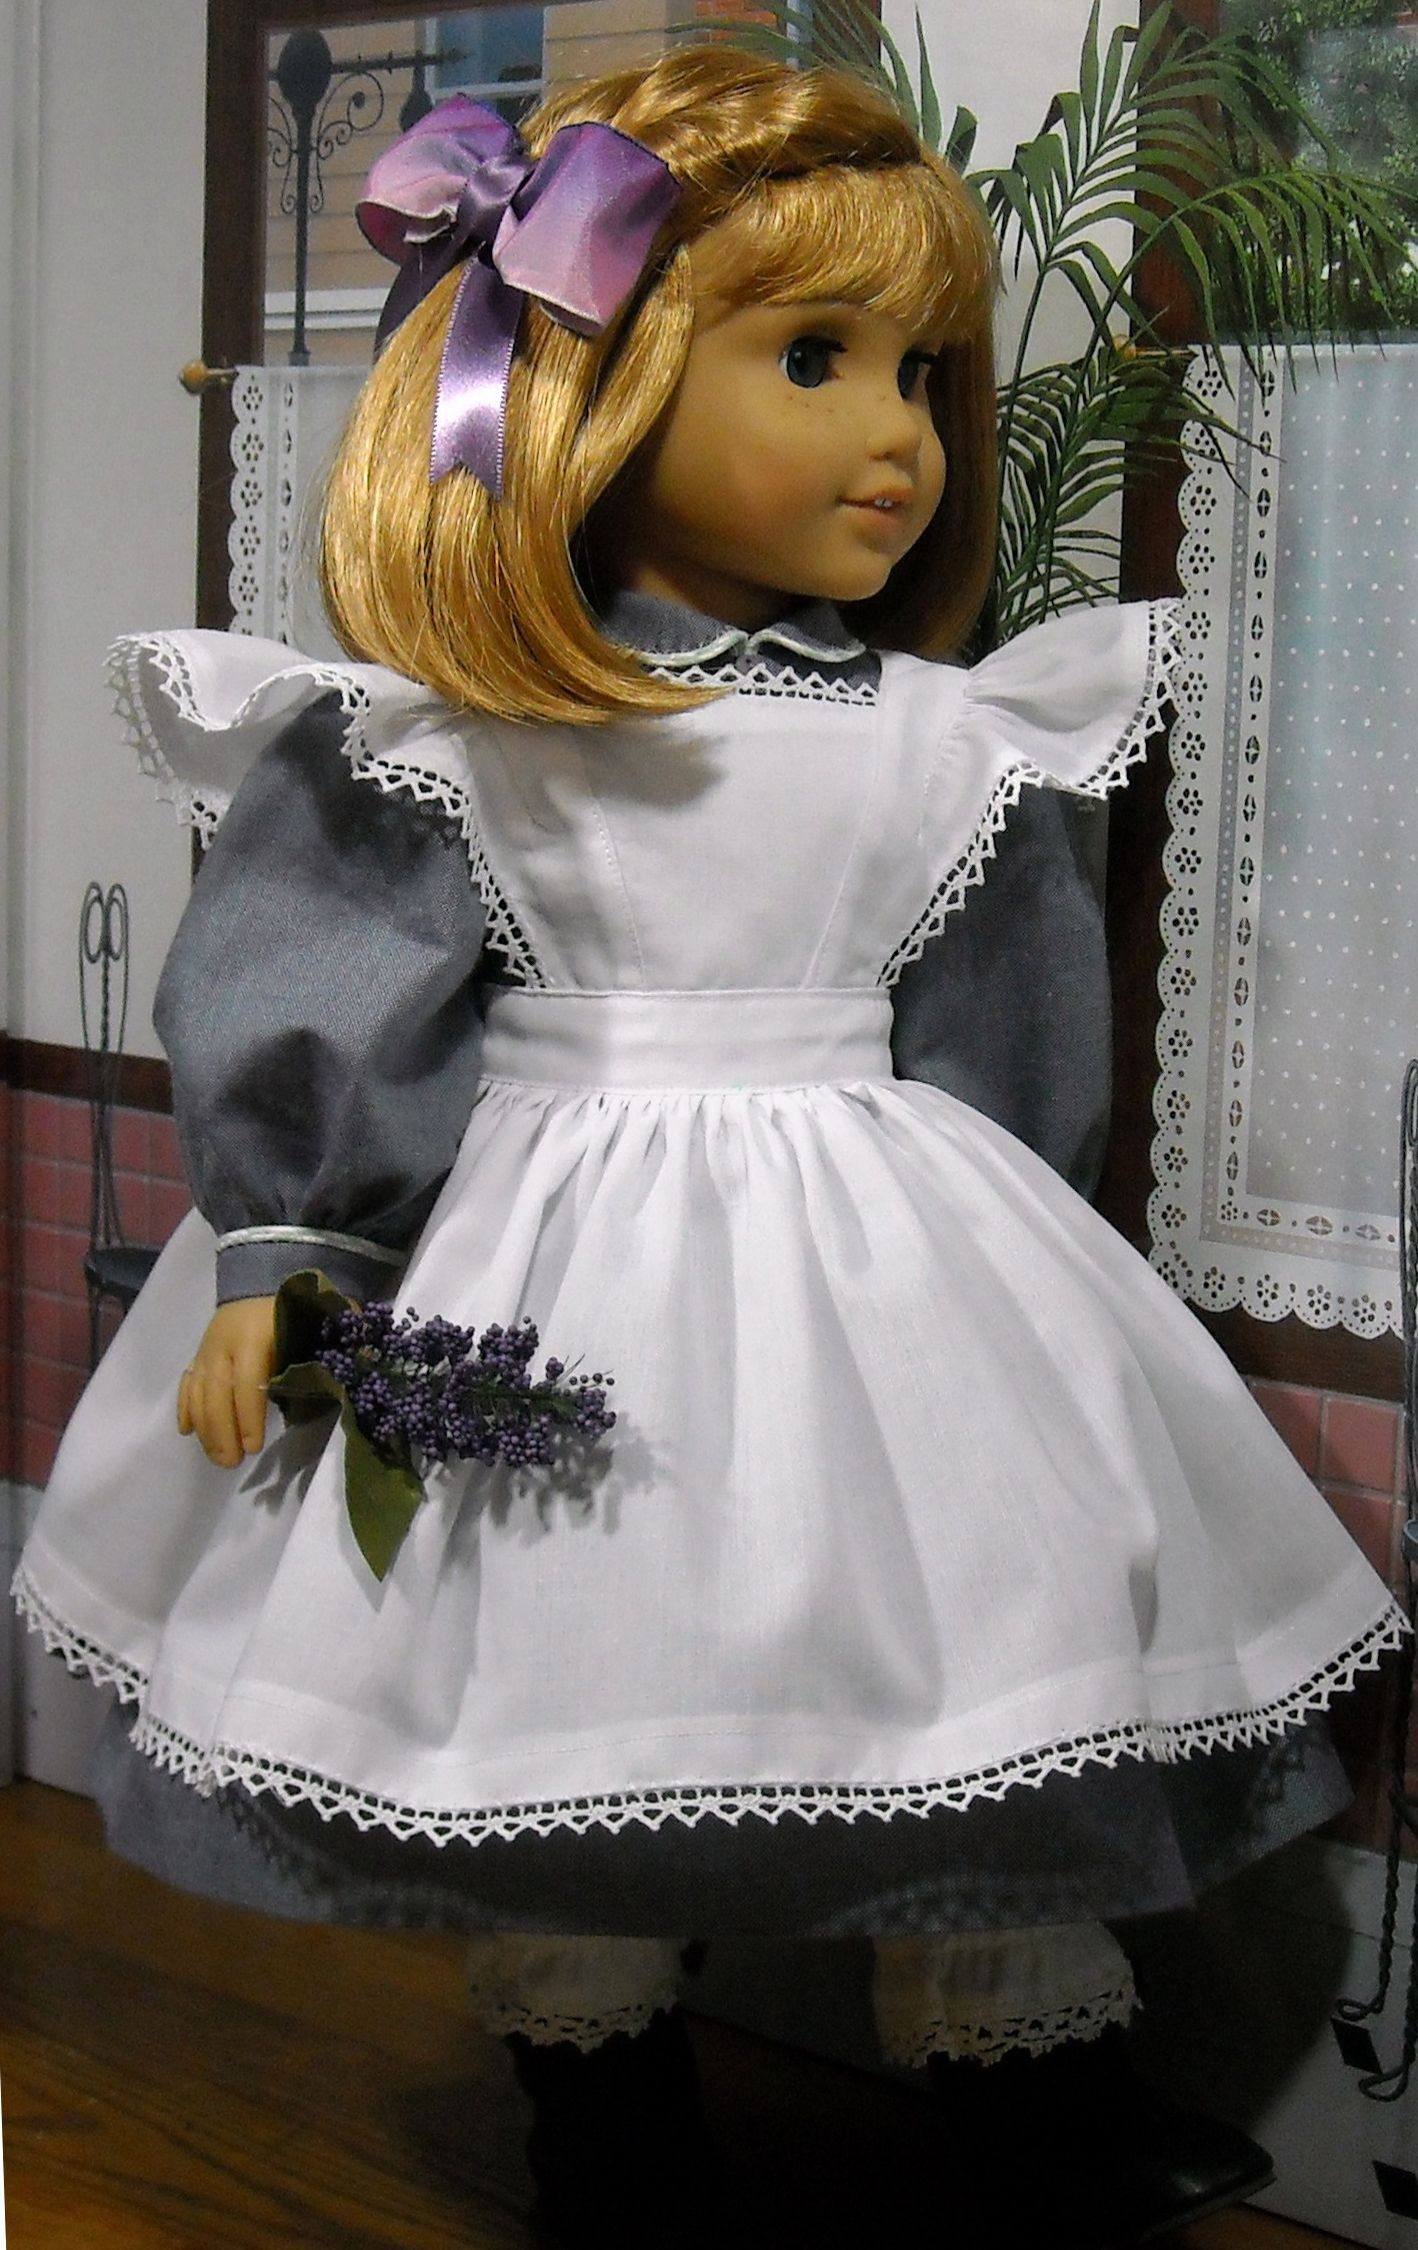 White pinafore apron costume - We Love The Sweet White Pinafore That Kathy K Made For American Girl Nellie Using Our